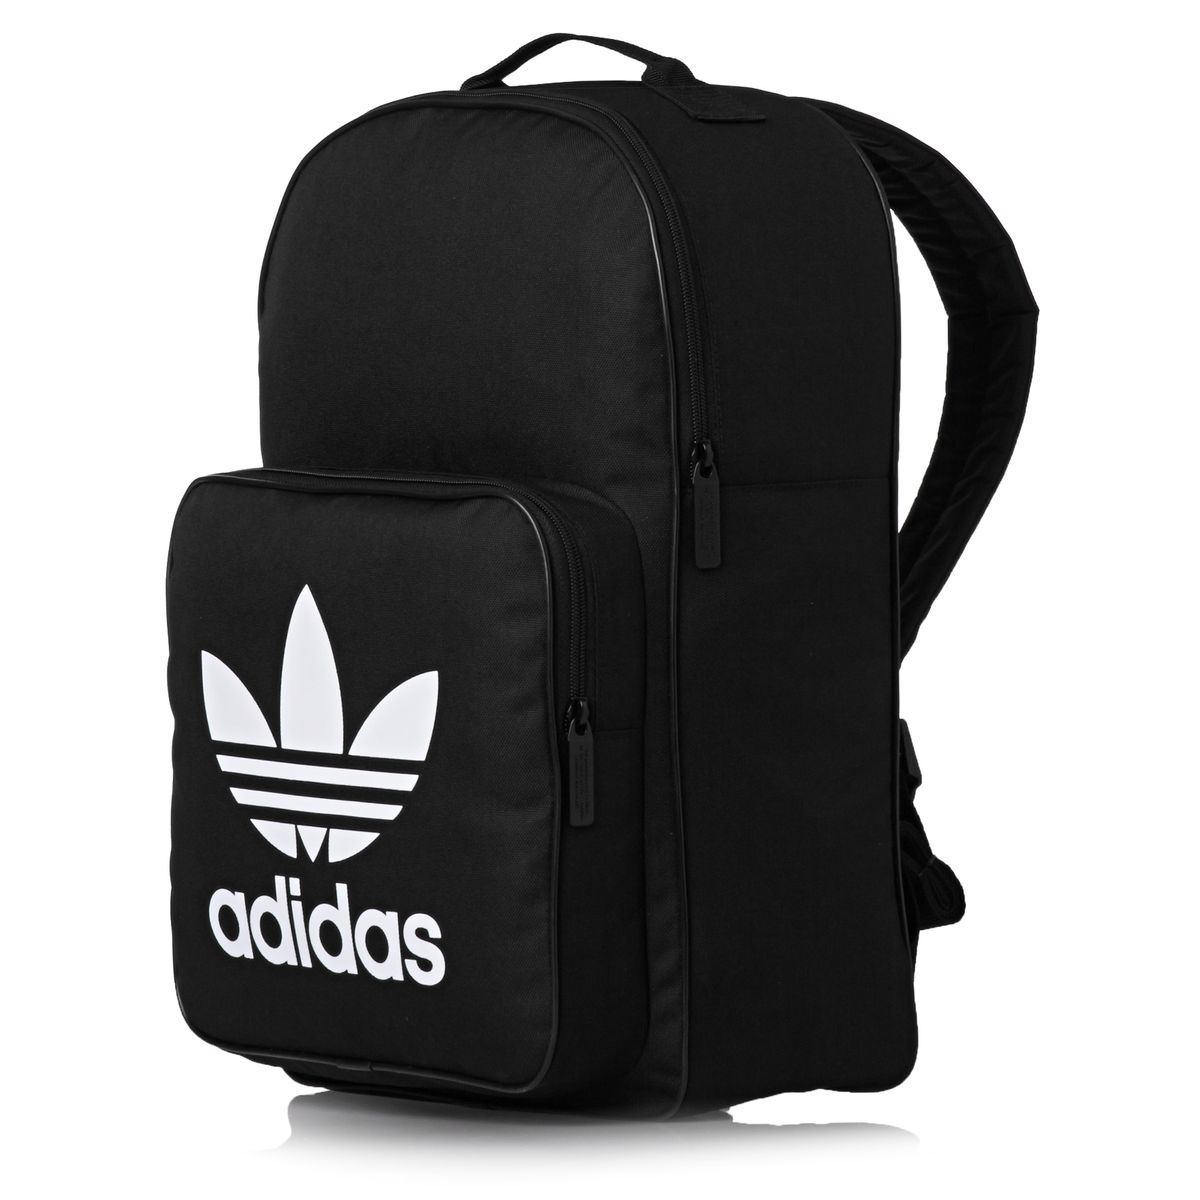 adidas-originals-backpacks-adidas-originals-classic-trefoil-backpack-black